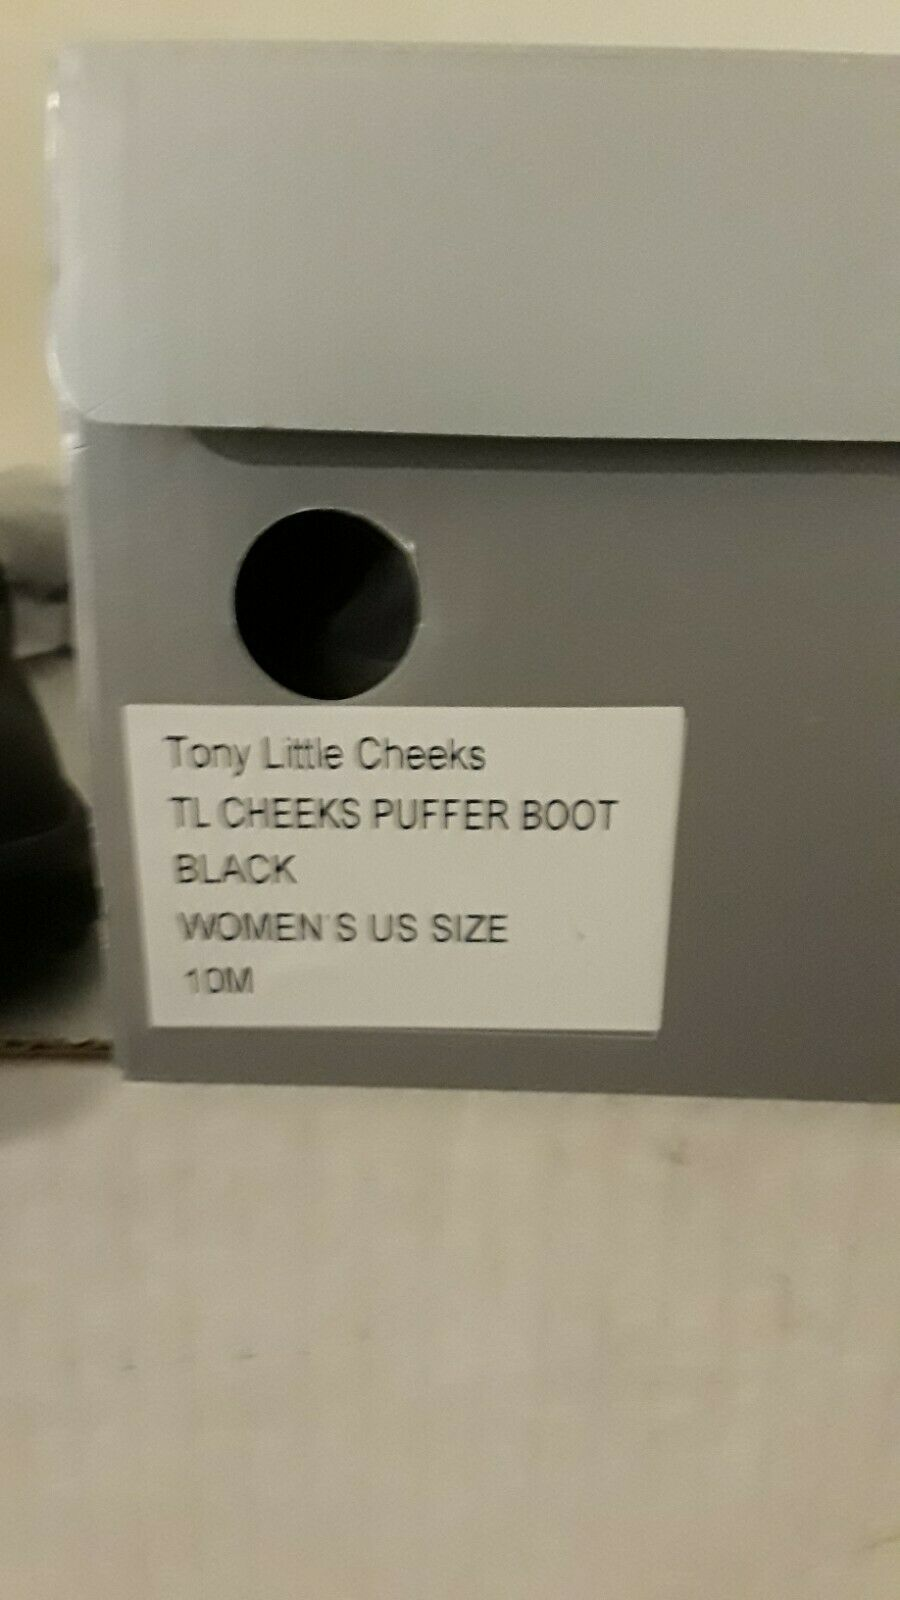 ,womenSTony Little Cheeks Tennis shoe boots, Size 10 womenExcellent Condition,